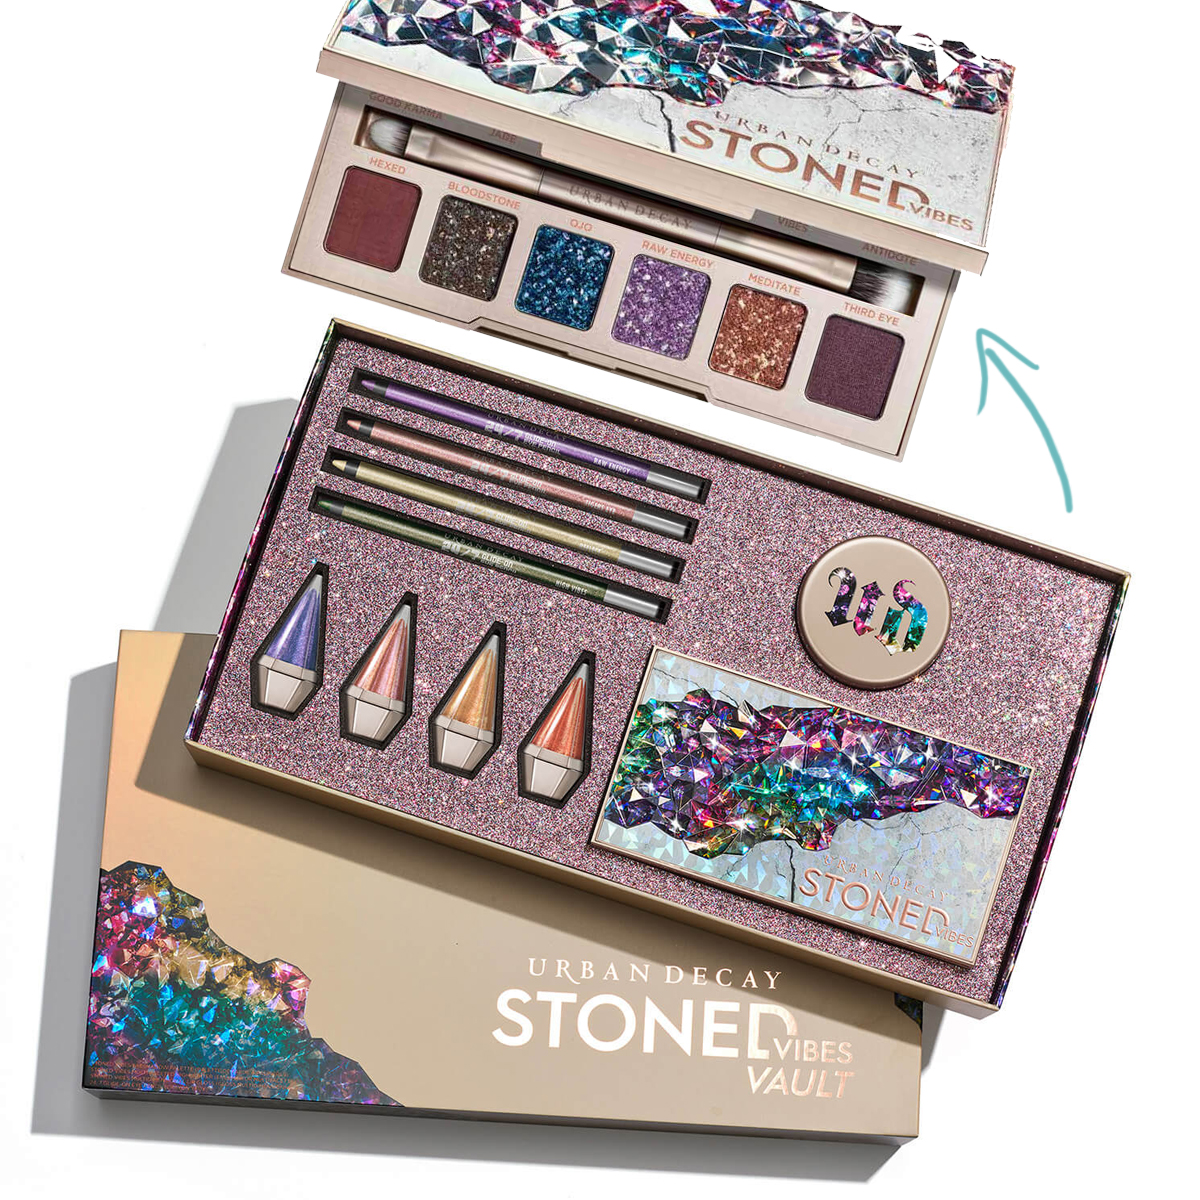 Urban Decay Stoned Vault